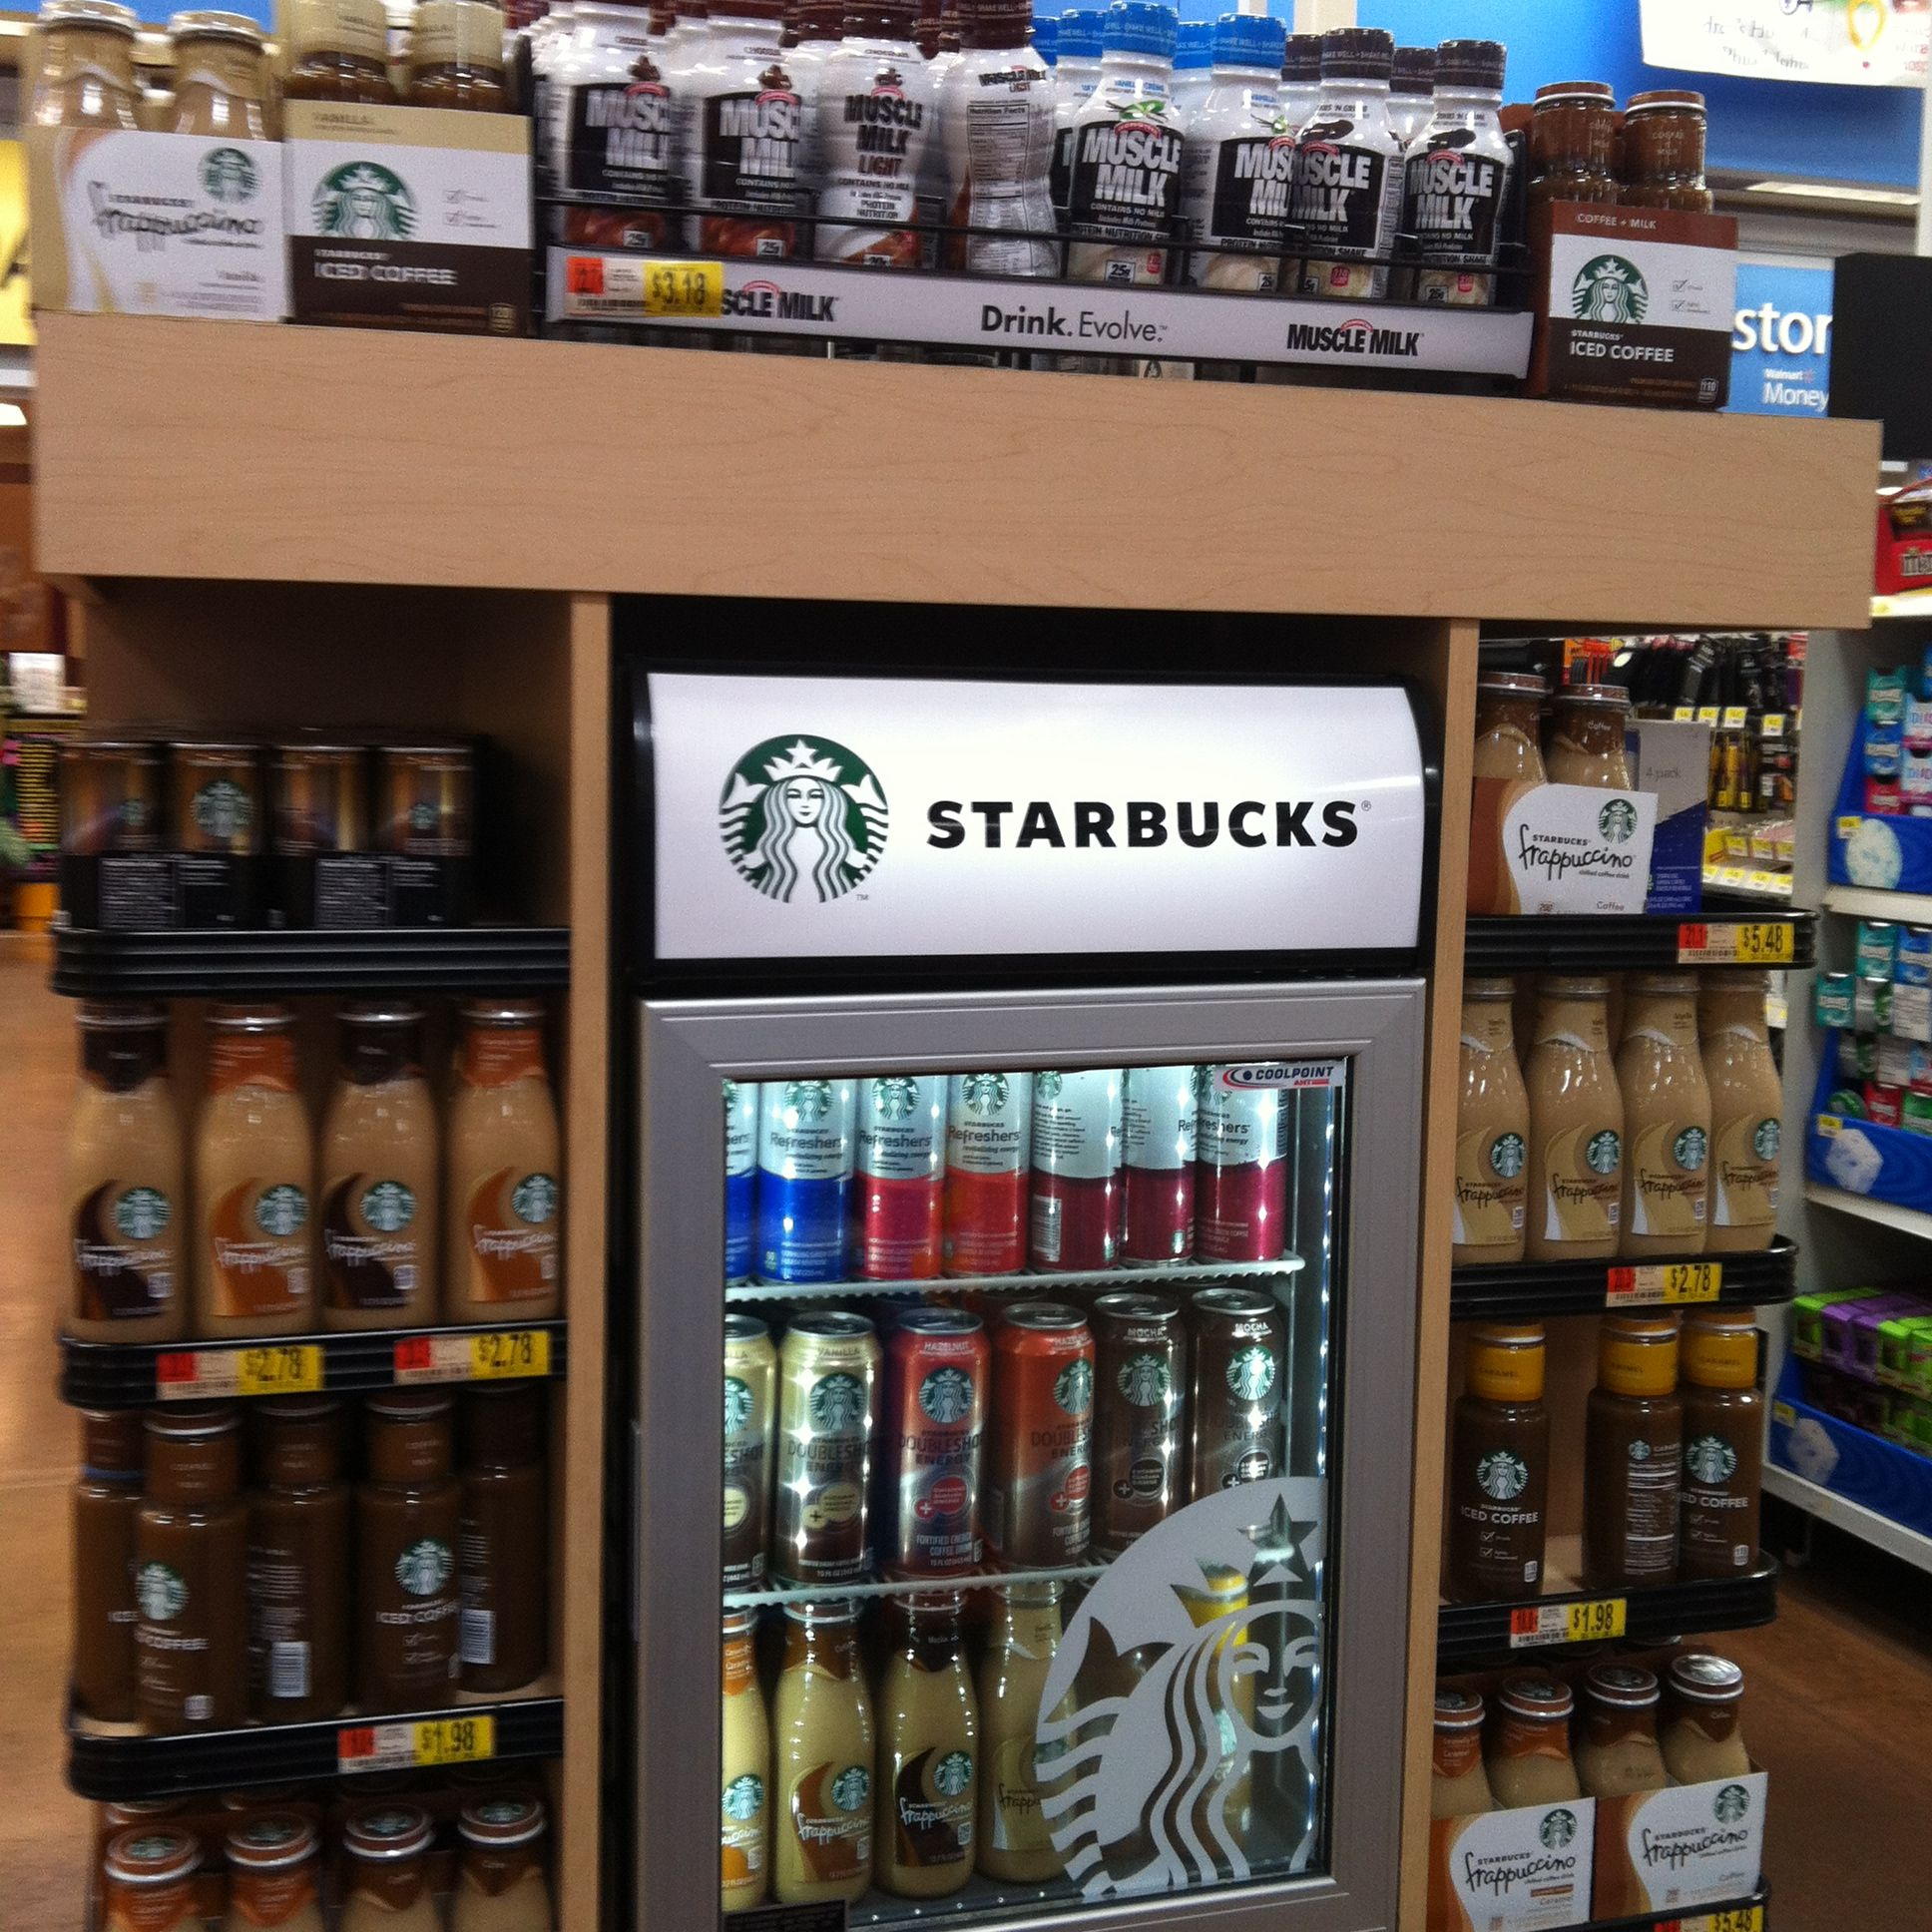 These Starbucks Drinks Are Loaded With Sugar Walmart